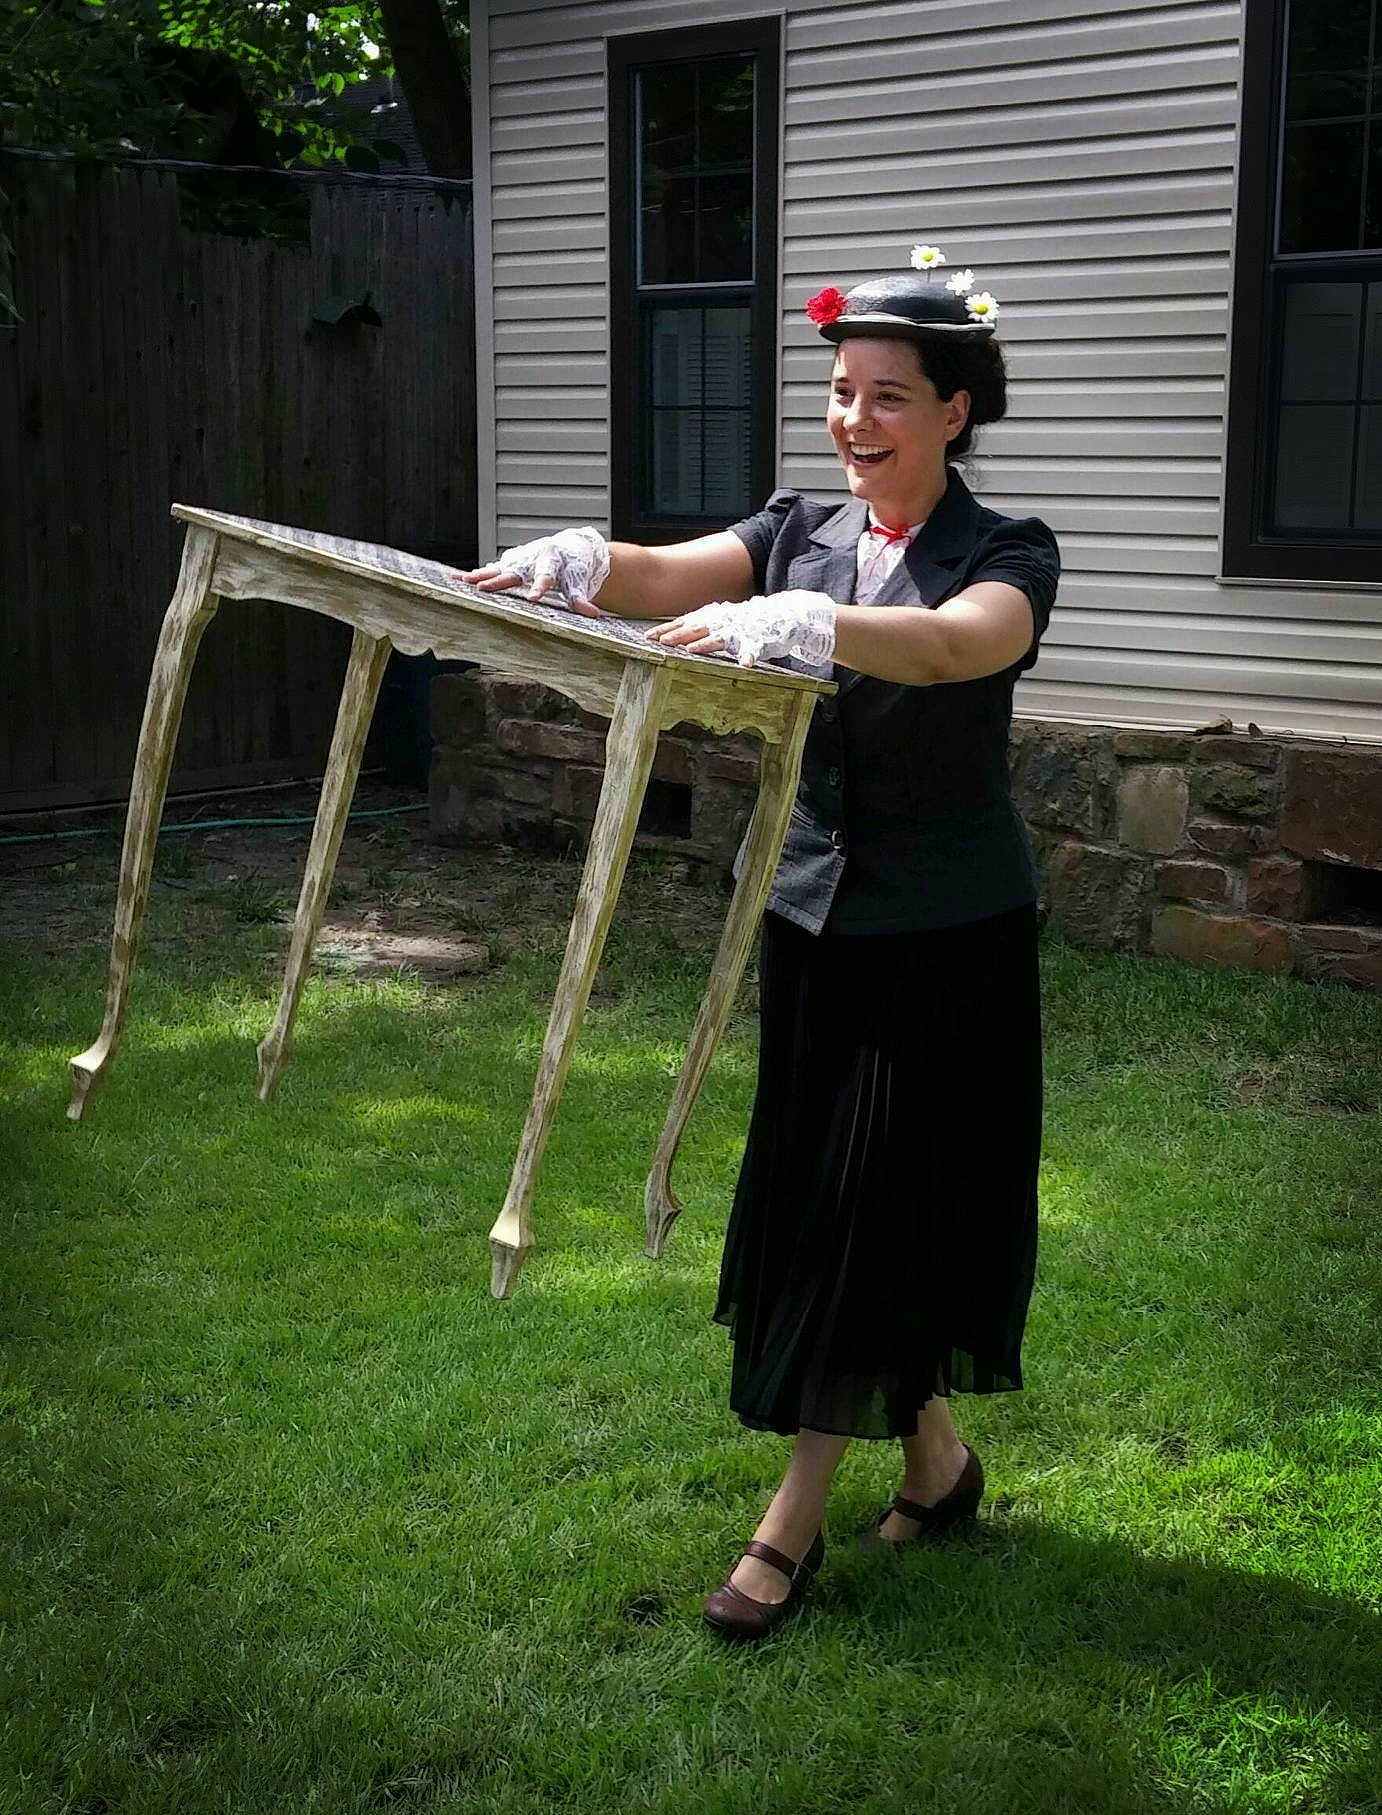 Mary Poppins Floating Table Trick